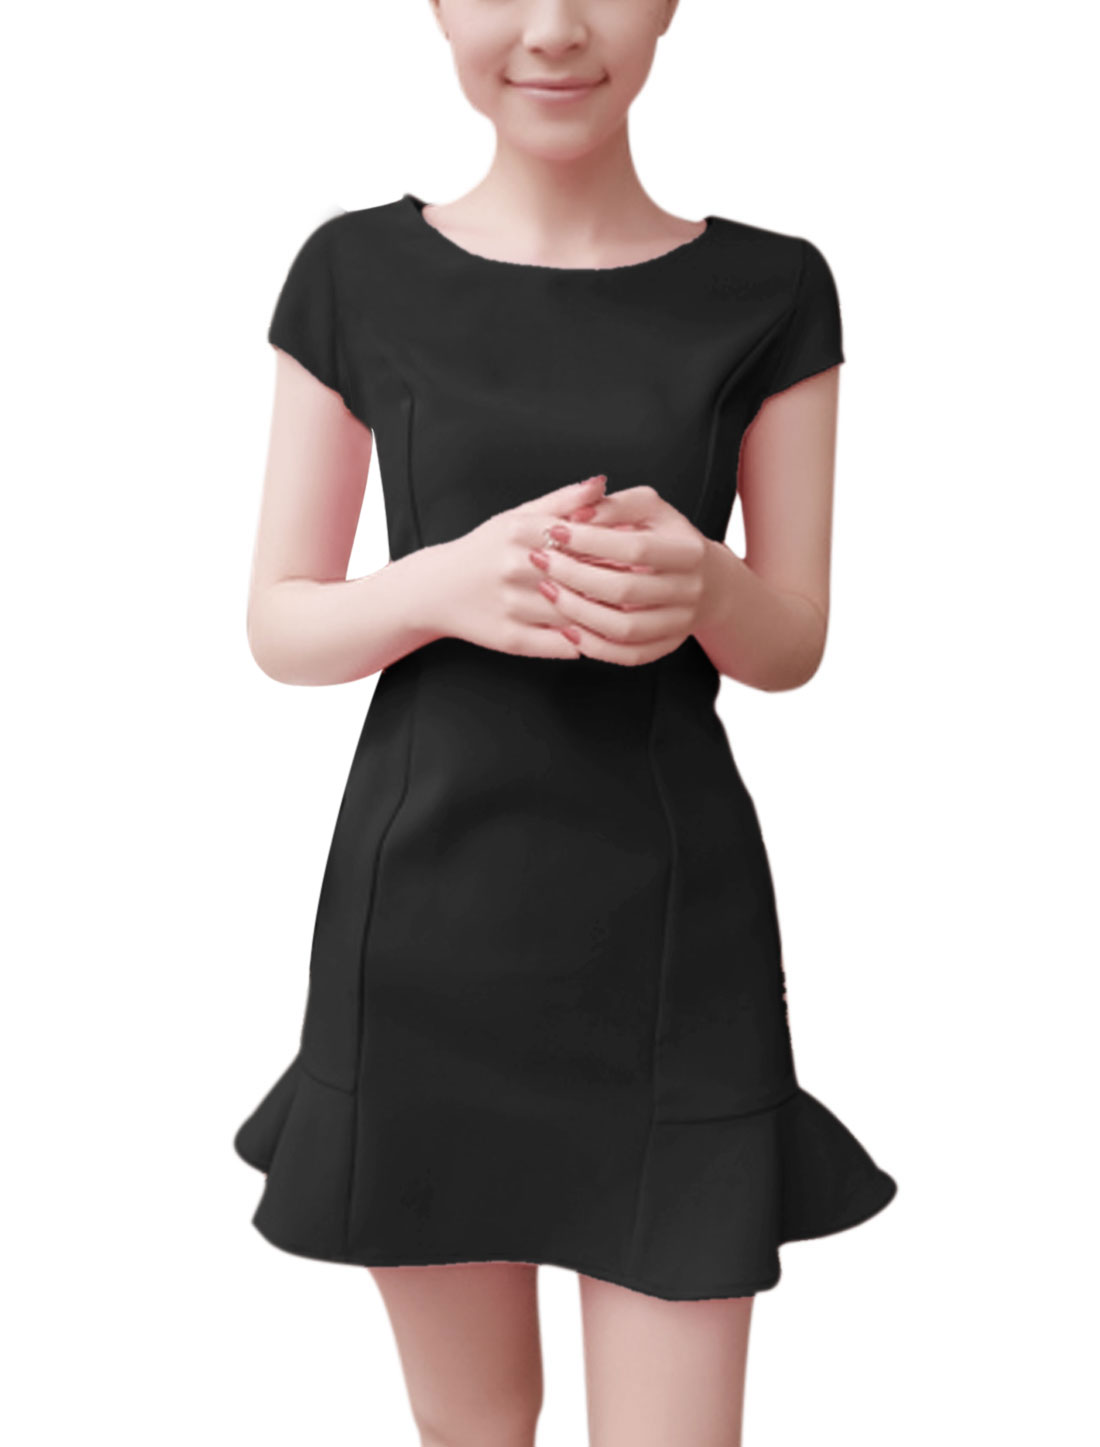 Lady Summer Wear Cap Sleeves Ruffle Hem Black Slim Stretch Dress S